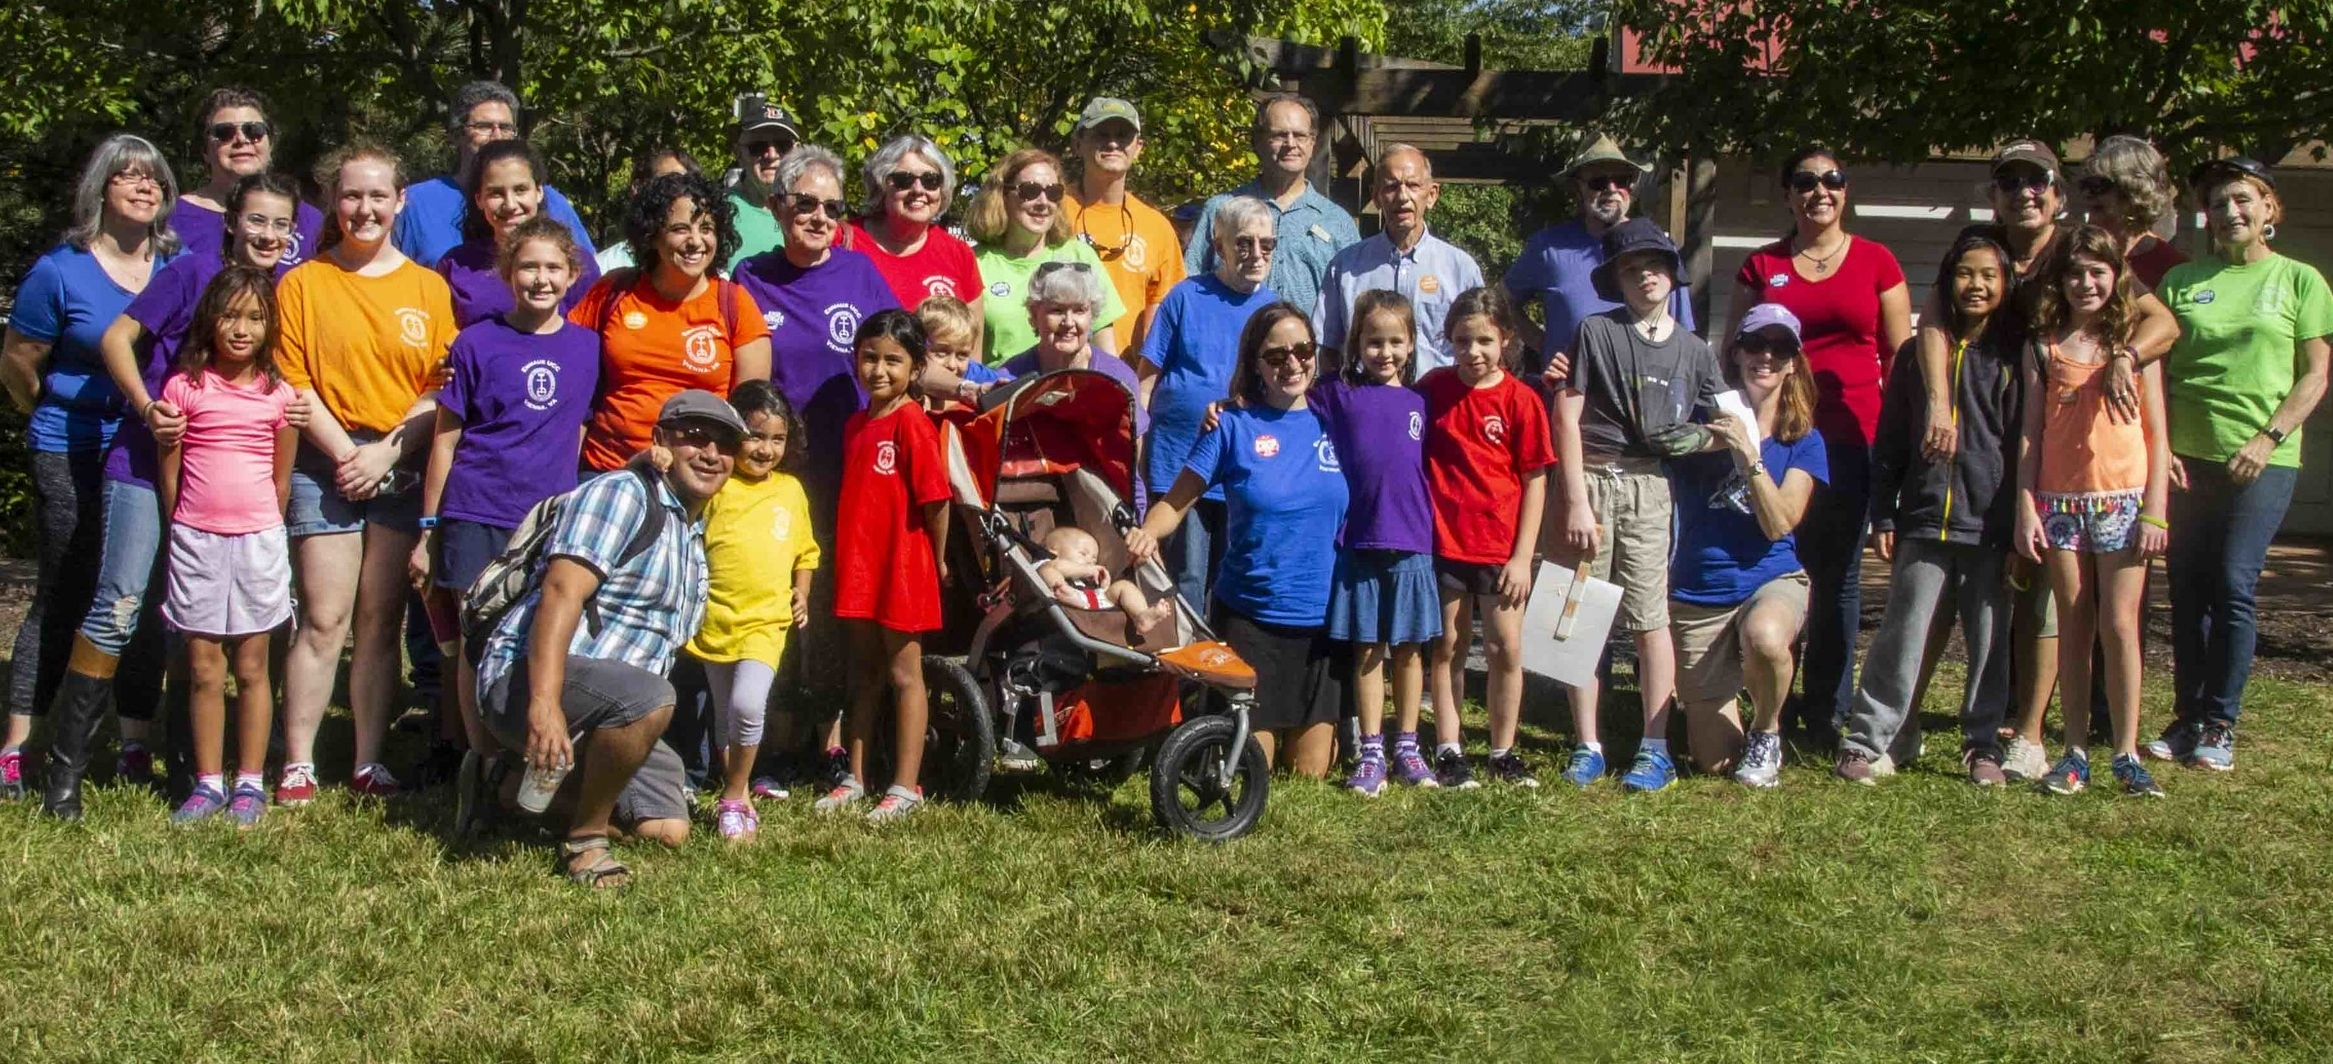 Emmaus members at the 2018 Crop Walk, part of Hunger Action Weekend